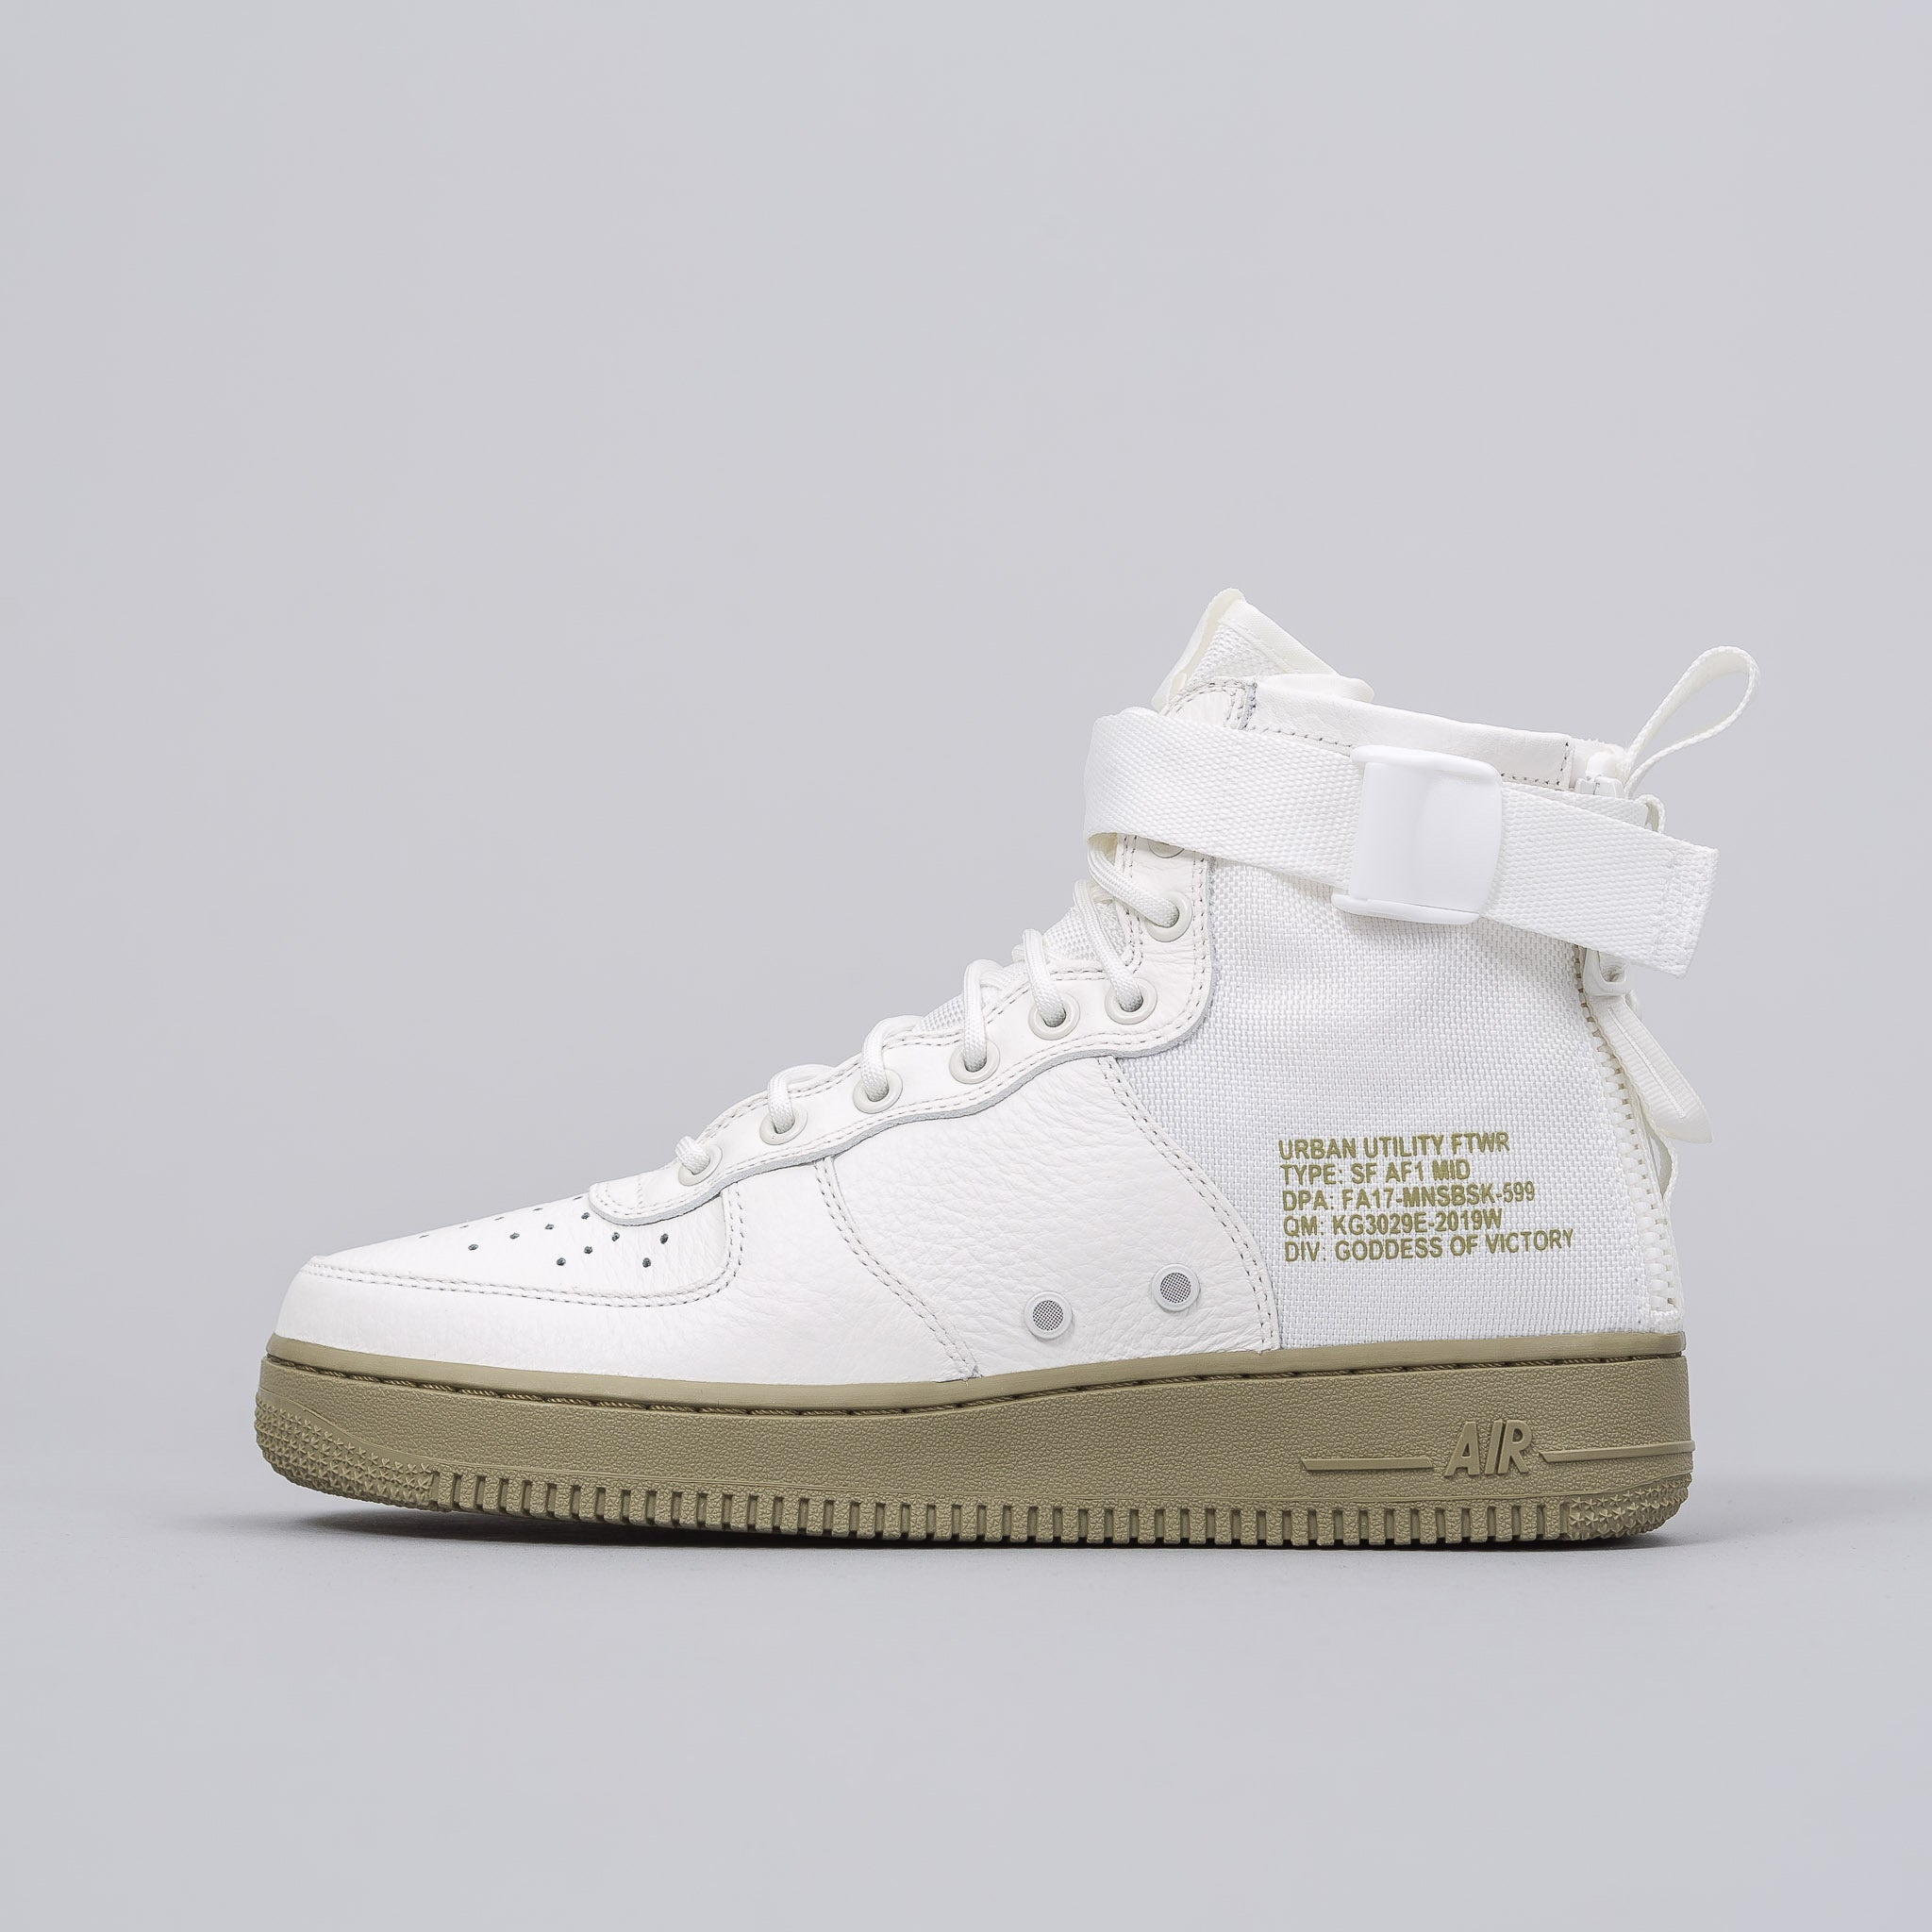 Special Field Air Force 1 Mid in Ivory/Olive